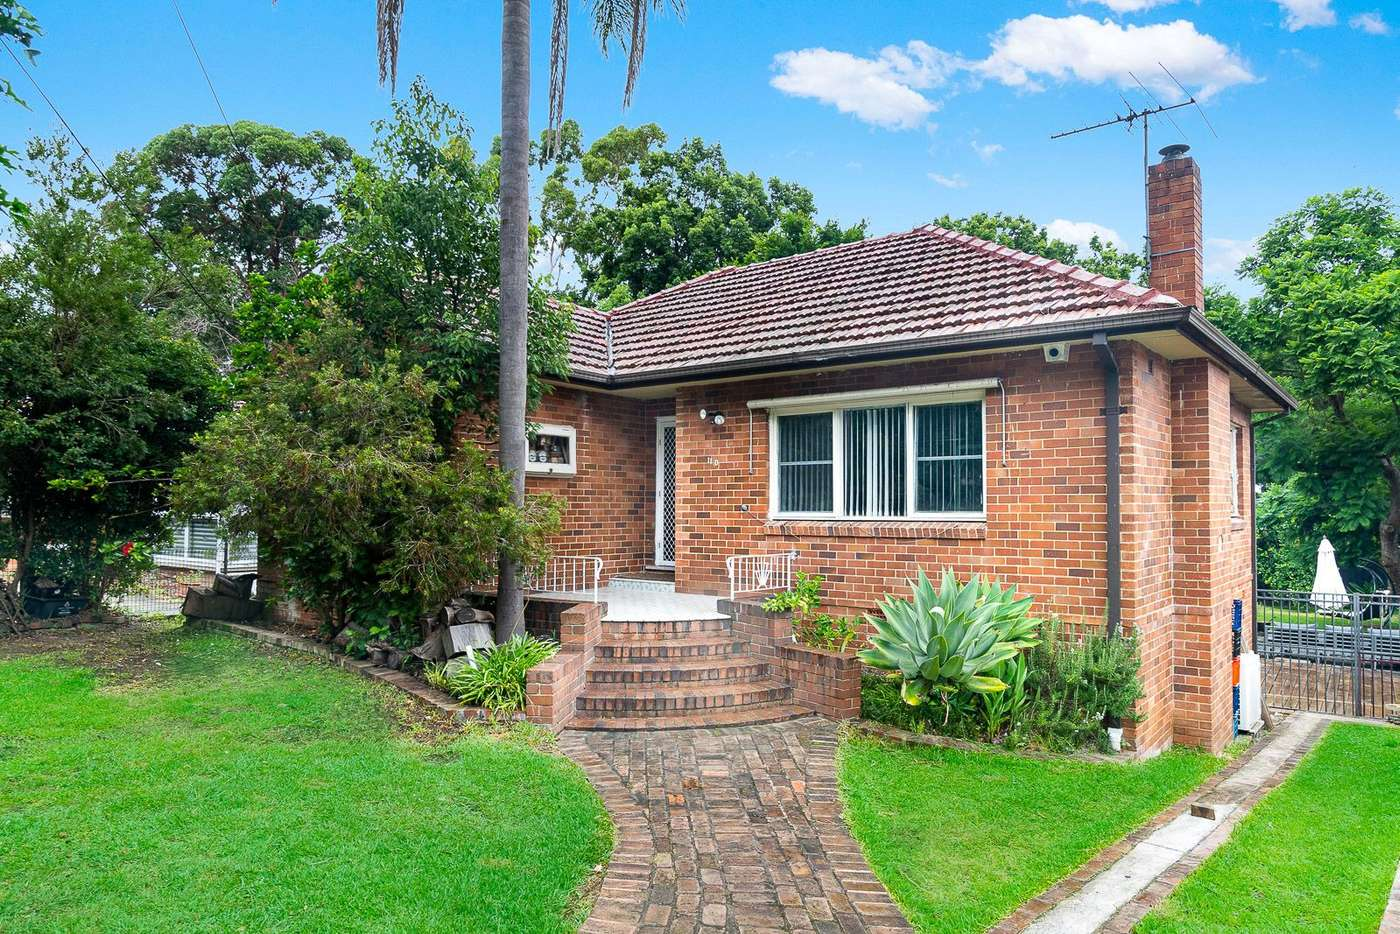 Main view of Homely house listing, 110 Epping Road, Lane Cove NSW 2066